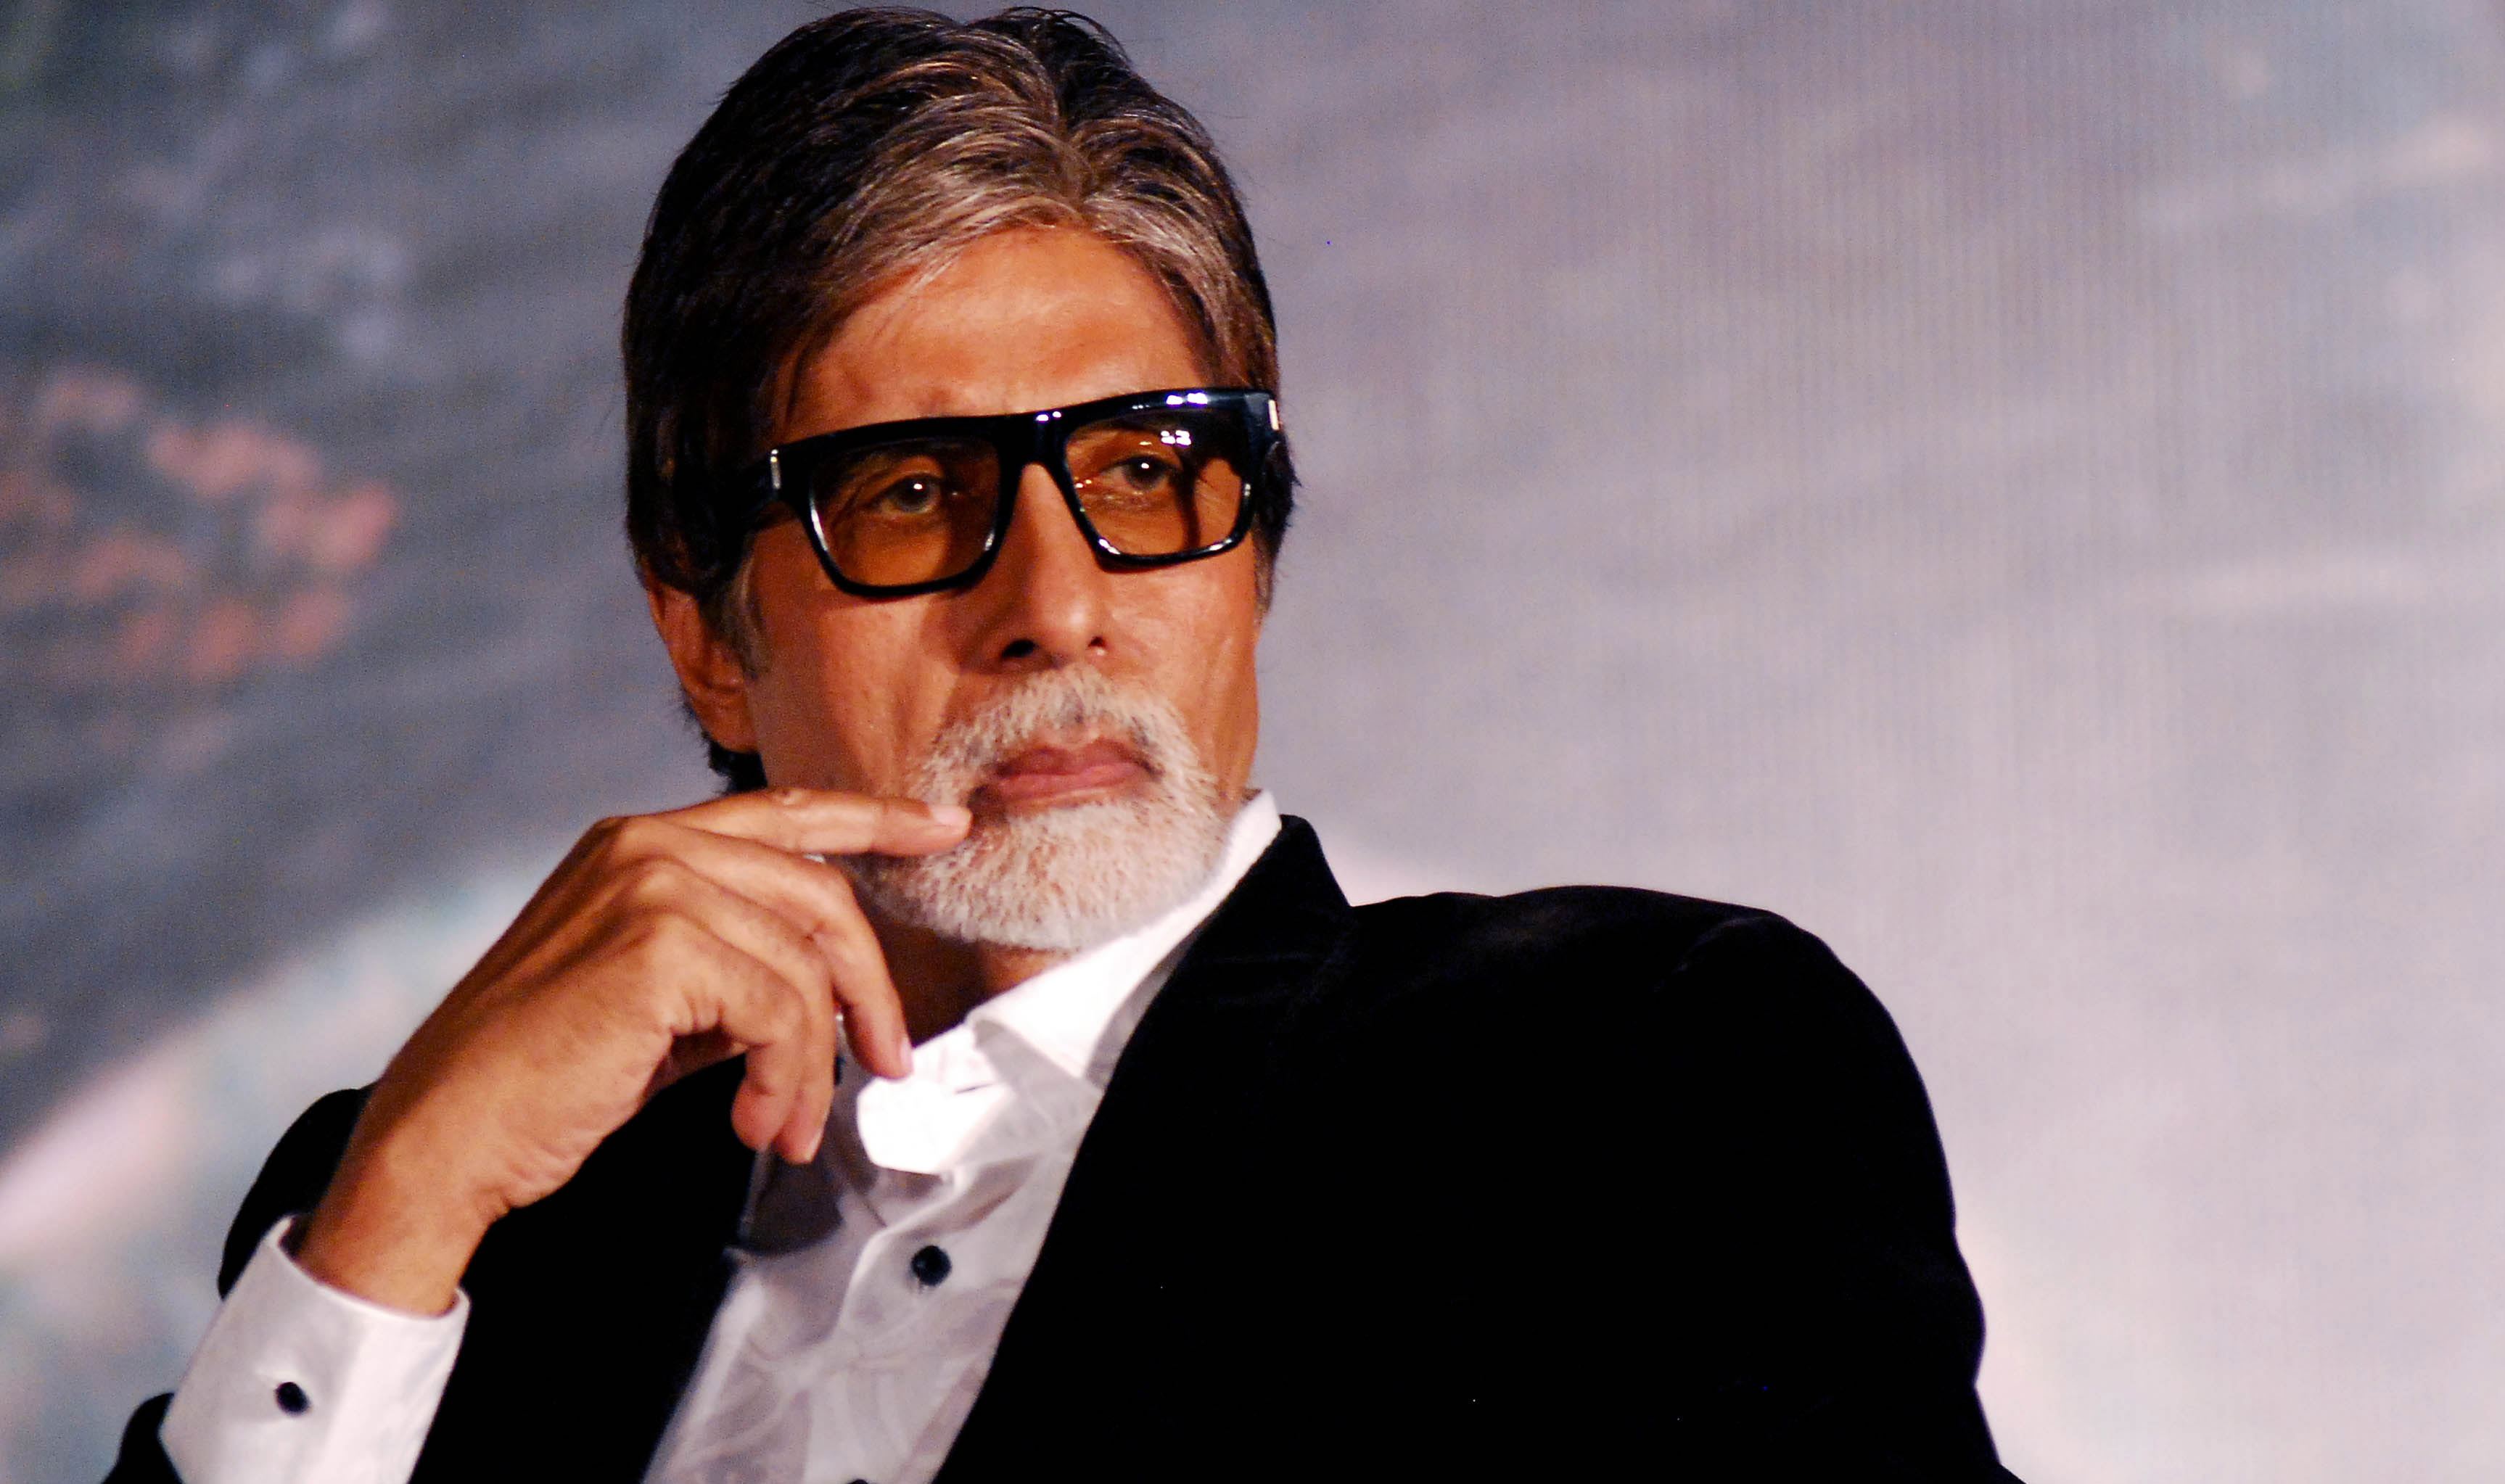 """Indian Bollywood actor Amitabh Bachchan attends a promotional event for the updated """"Raghupati Raghava Raja Ram"""" and the upcoming political thriller Hindi film """"Styagraha"""" in Mumbai on July 25, 2013. AFP PHOTO/STR"""